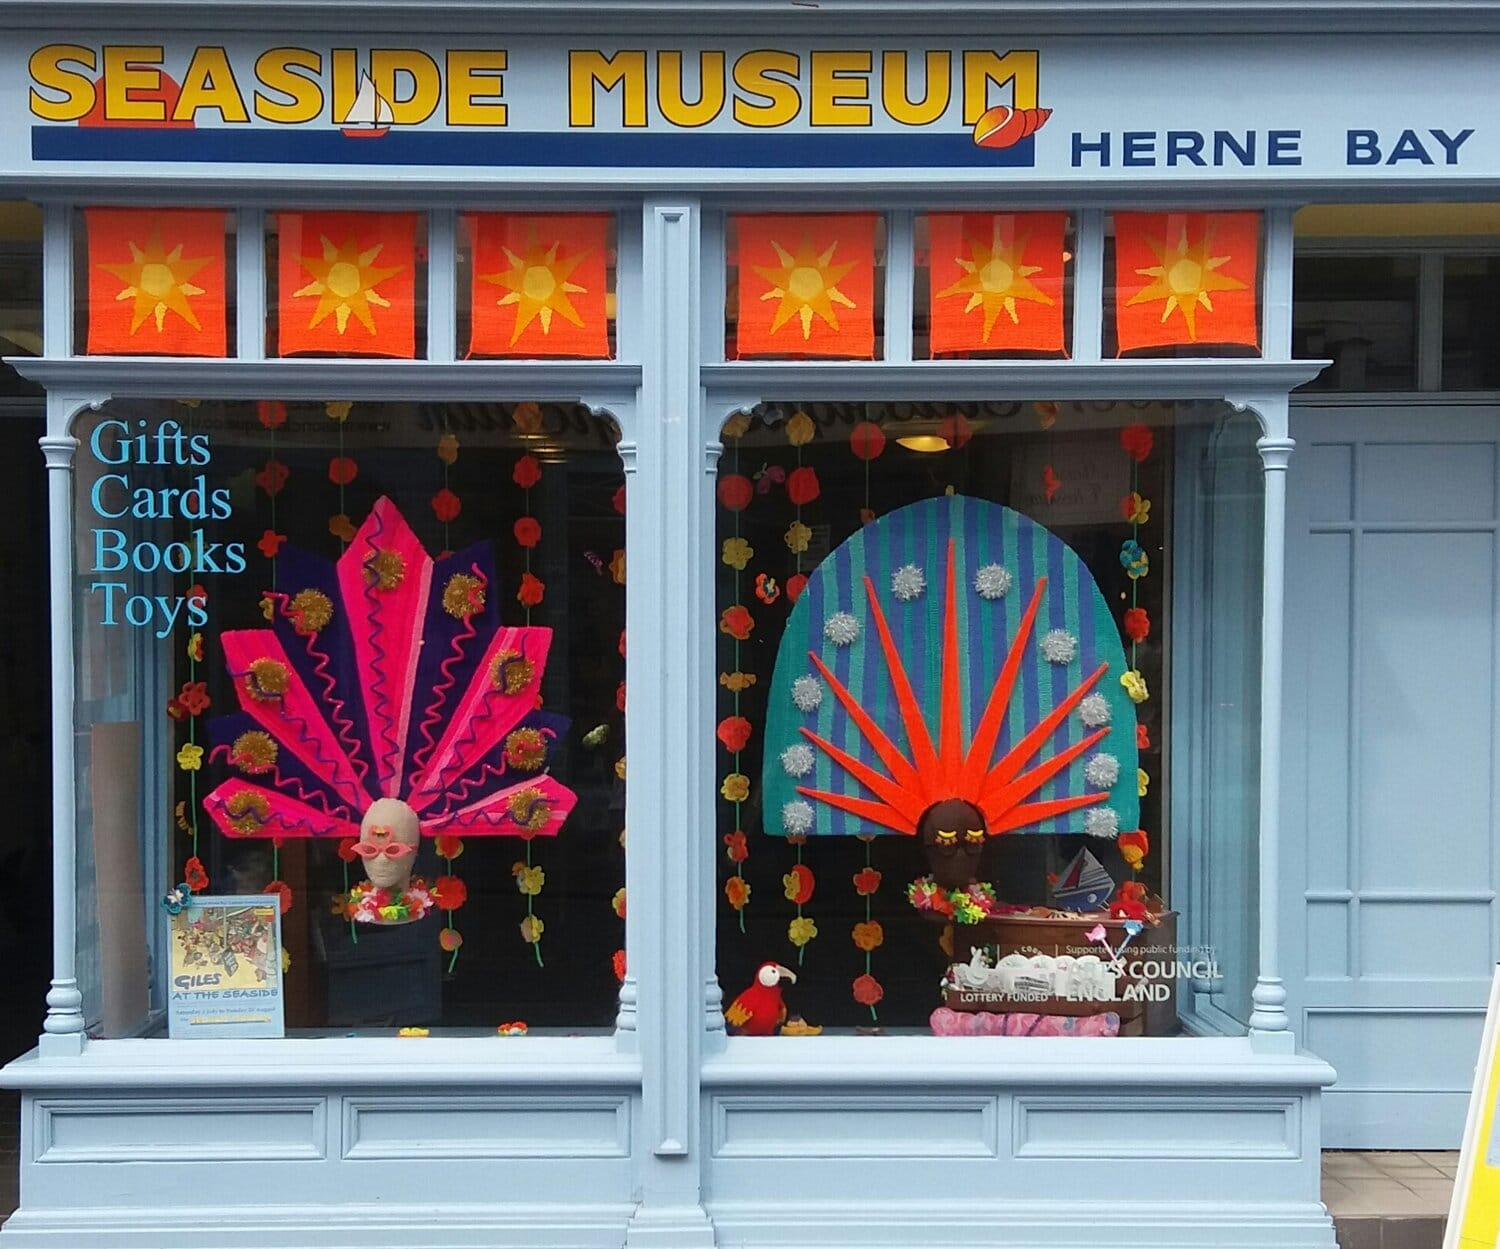 Jazz in Herne Bay Exhibition at the Seaside Museum